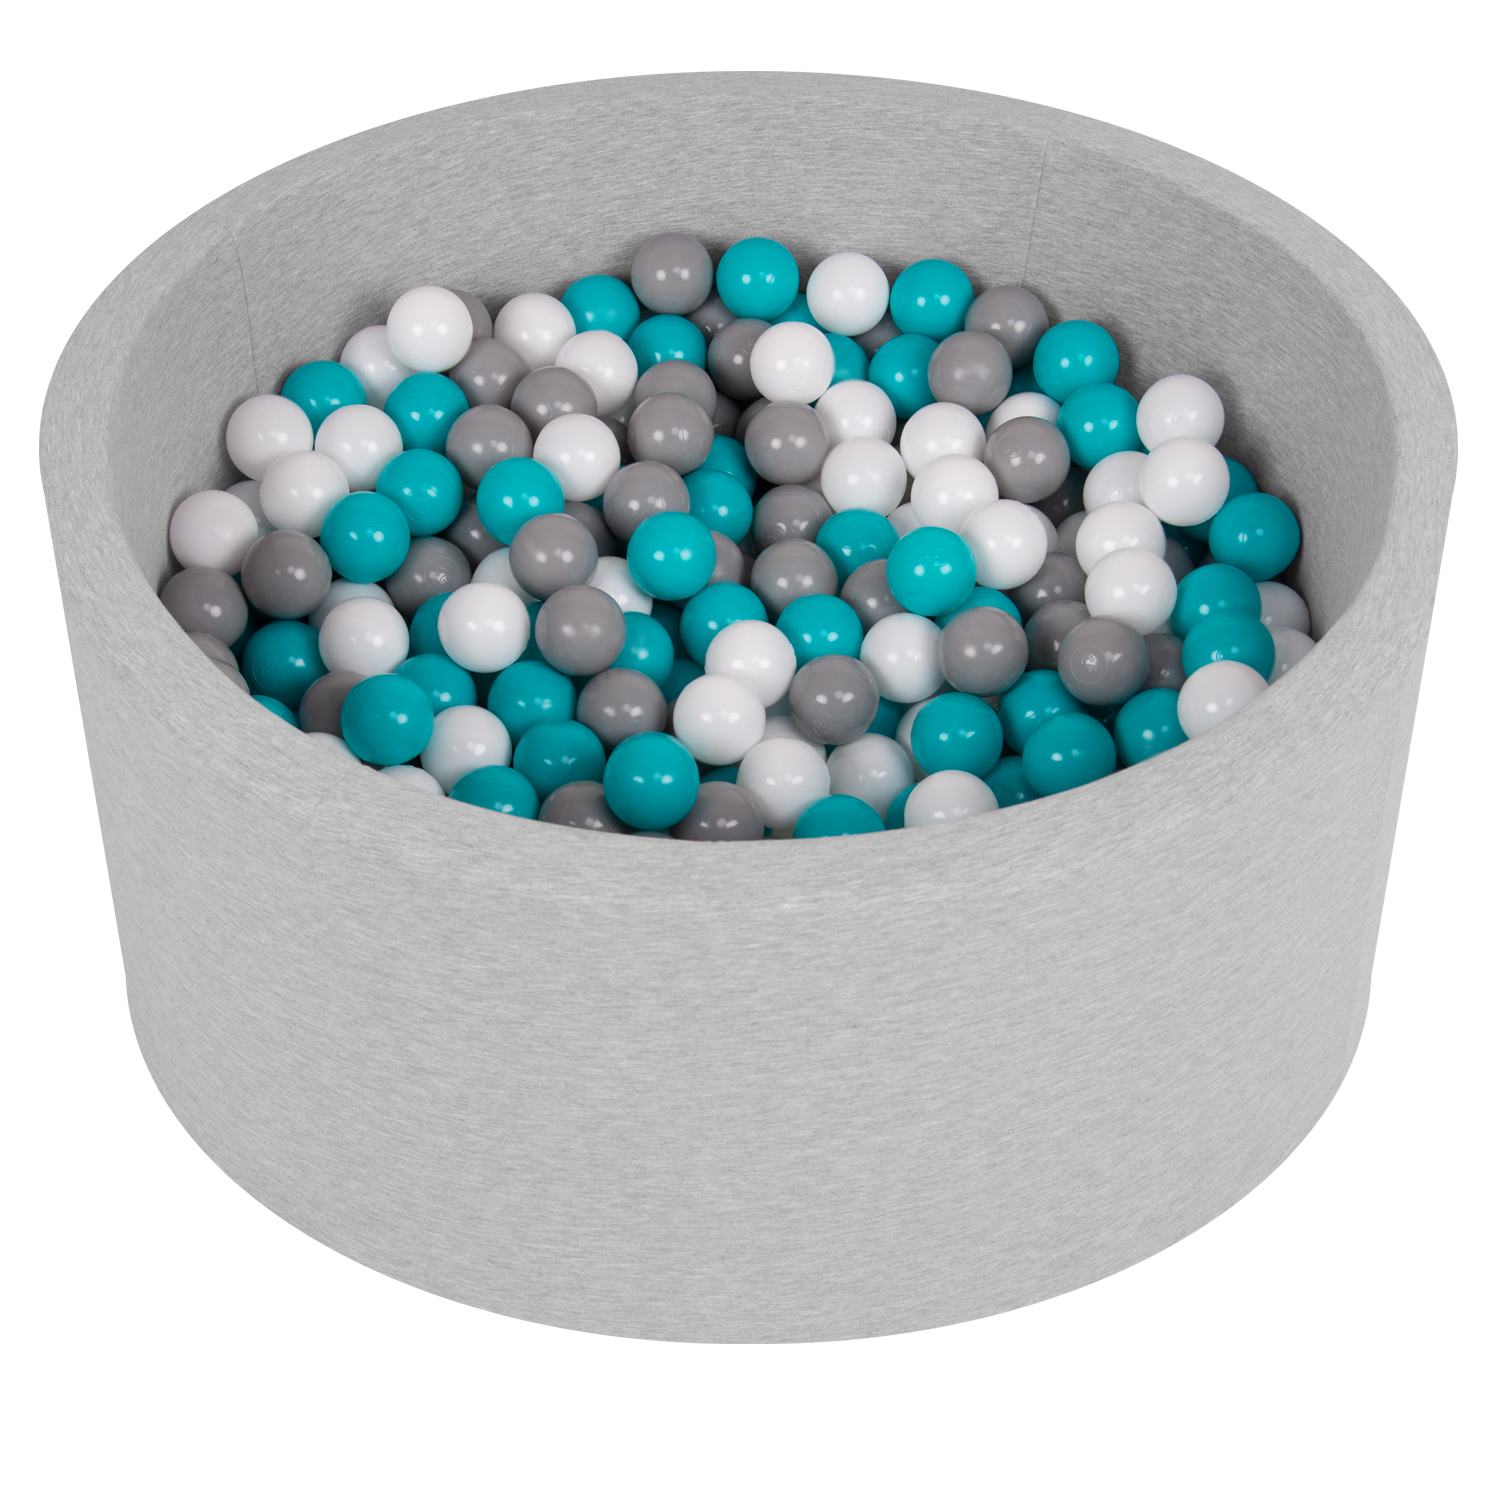 Selonis-Soft-Ball-Pit-Pool-Round-90x30cm-for-Baby-Toddler-200-Balls-Foam miniatuur 8